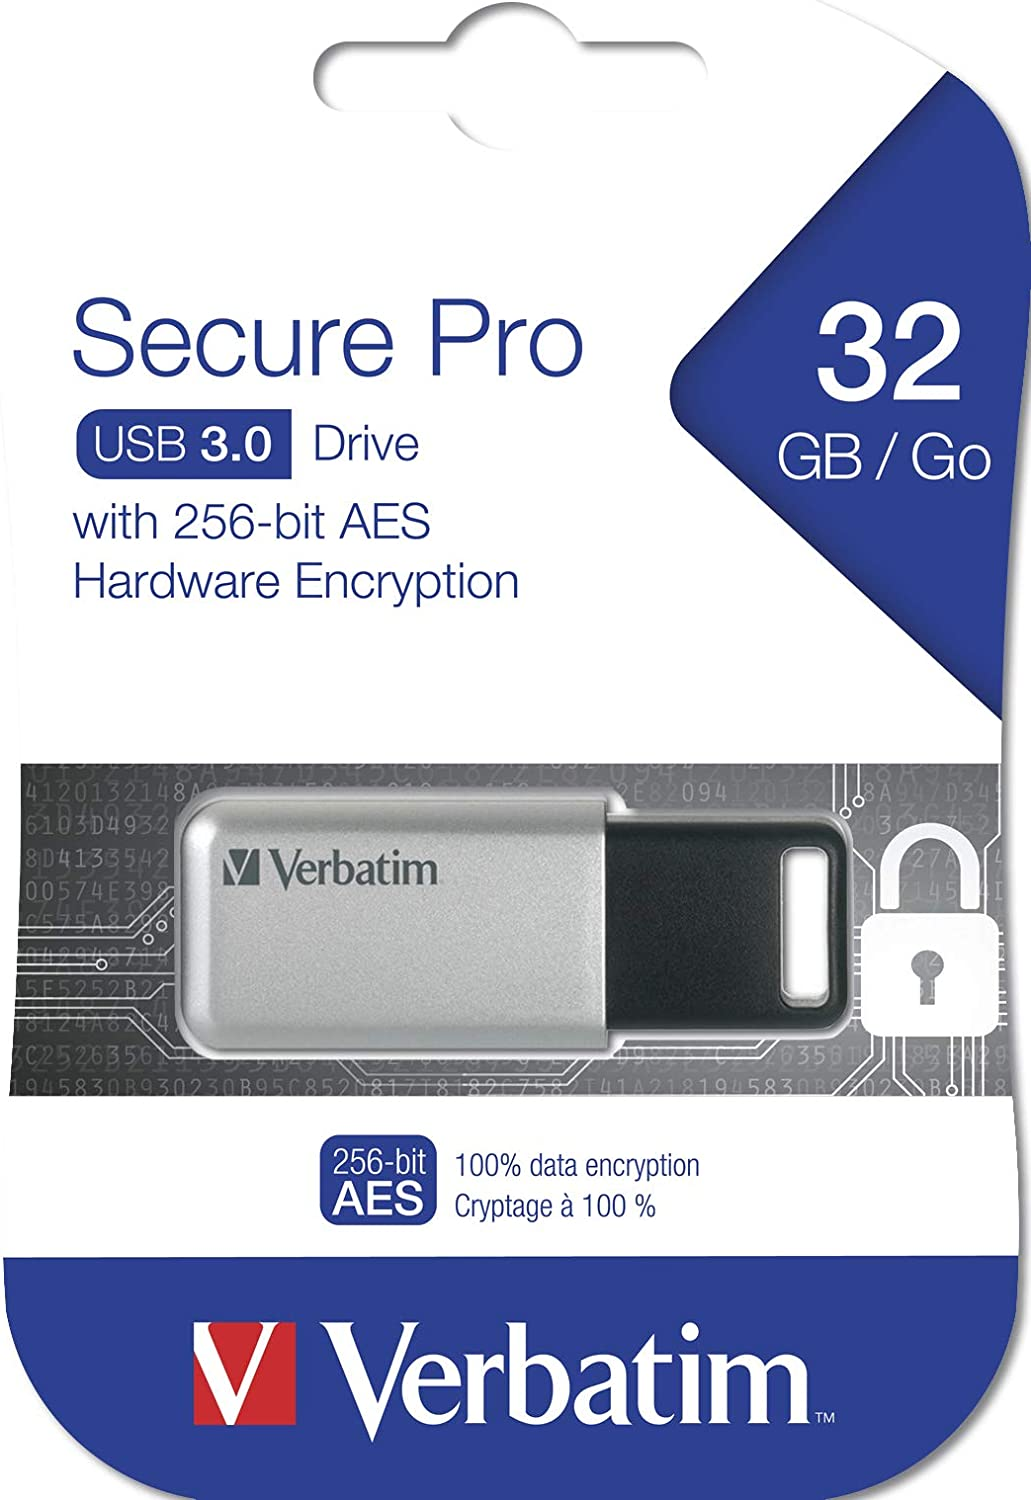 Silver Verbatim 32GB Storen Go Secure Pro USB 3.0 Flash Drive with AES 256 Hardware Encryption